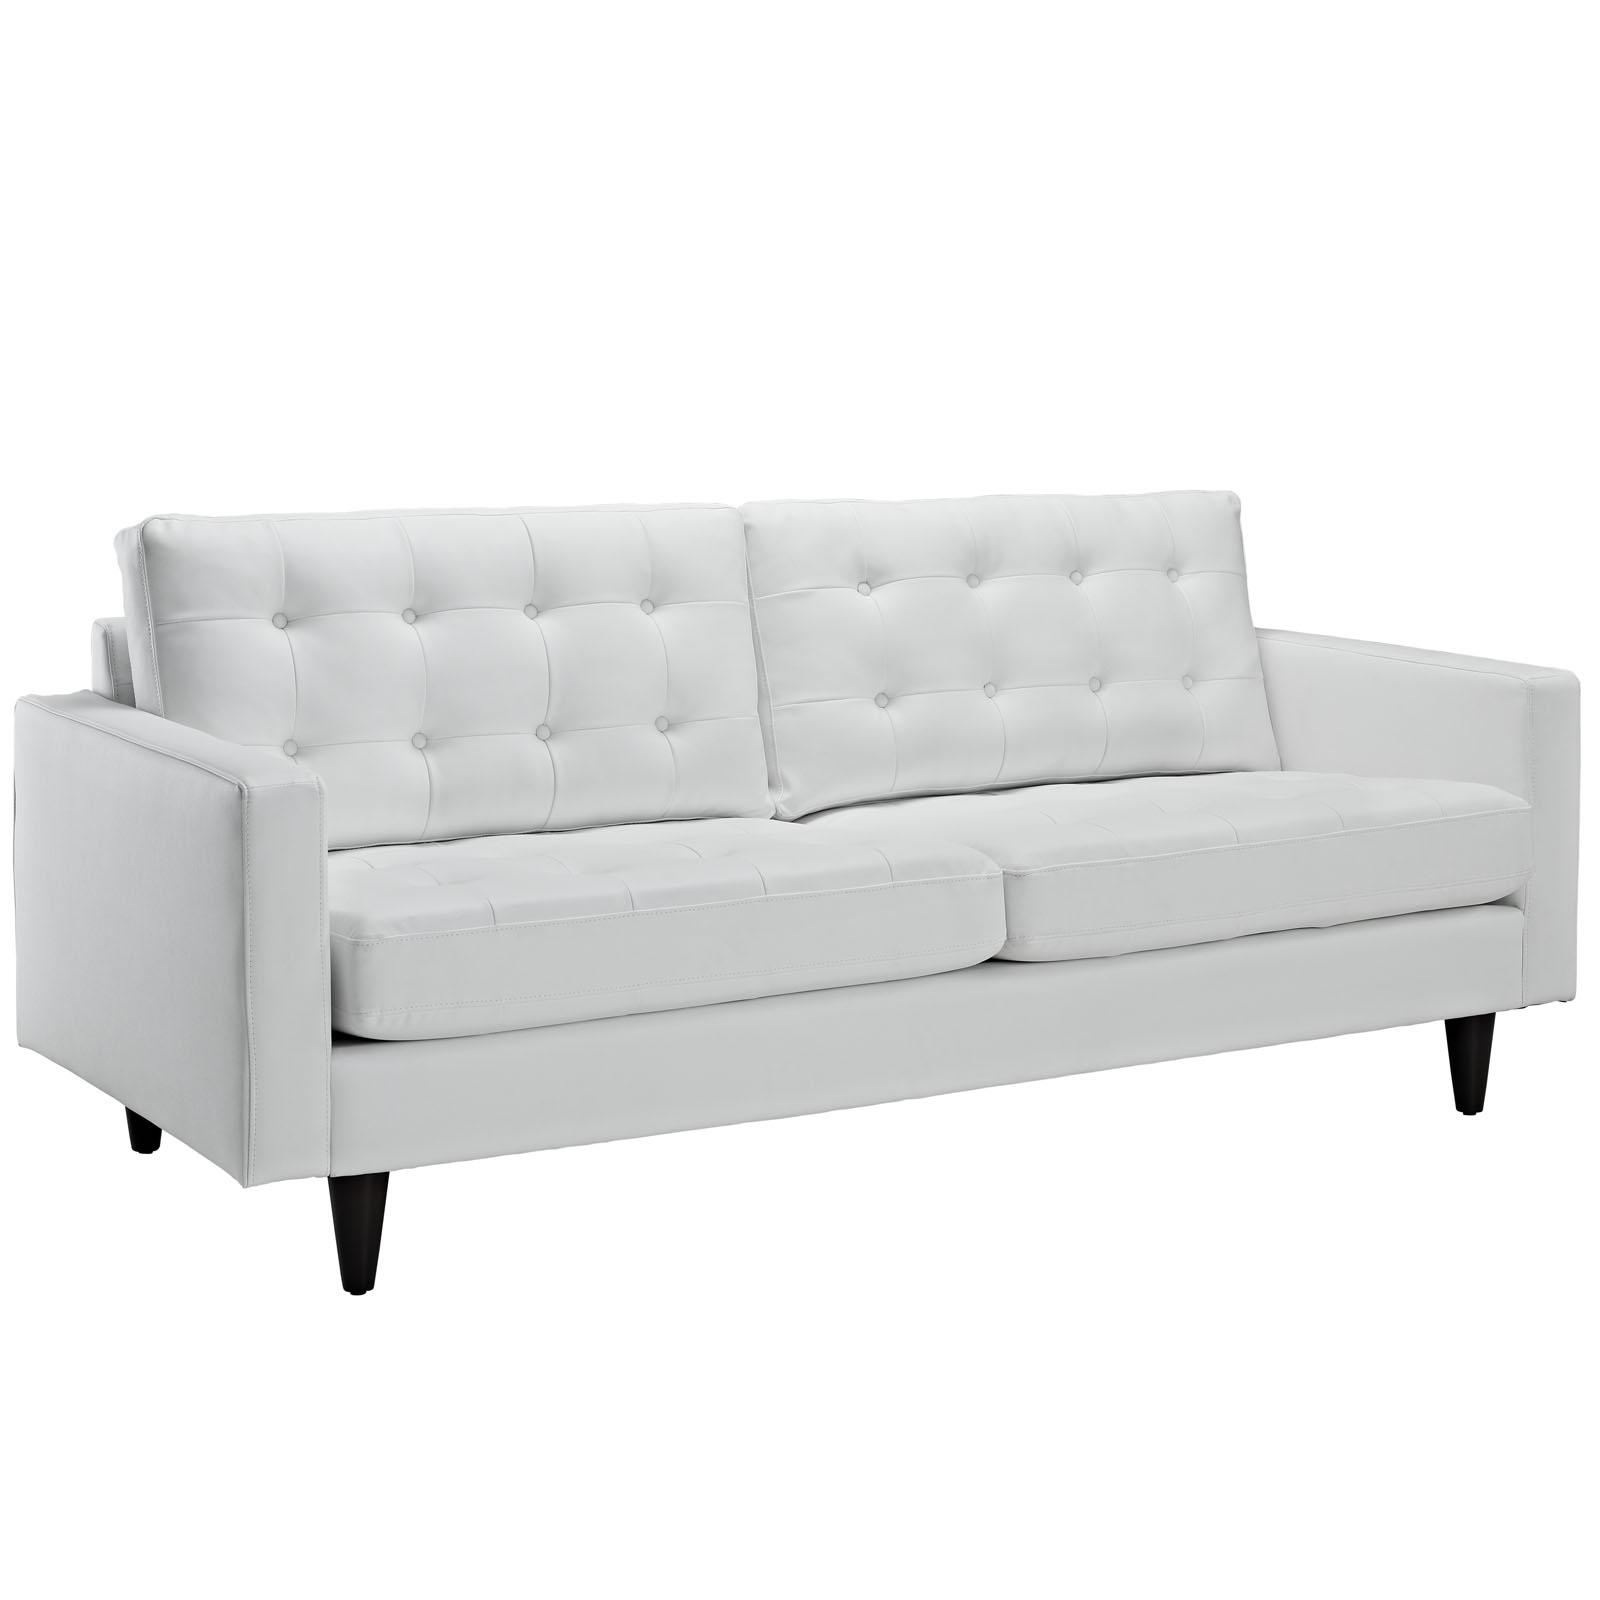 Sofas Center : White Sofa Chair Fabric Sofas Modern Contemporary Regarding White Sofa Chairs (Image 17 of 20)